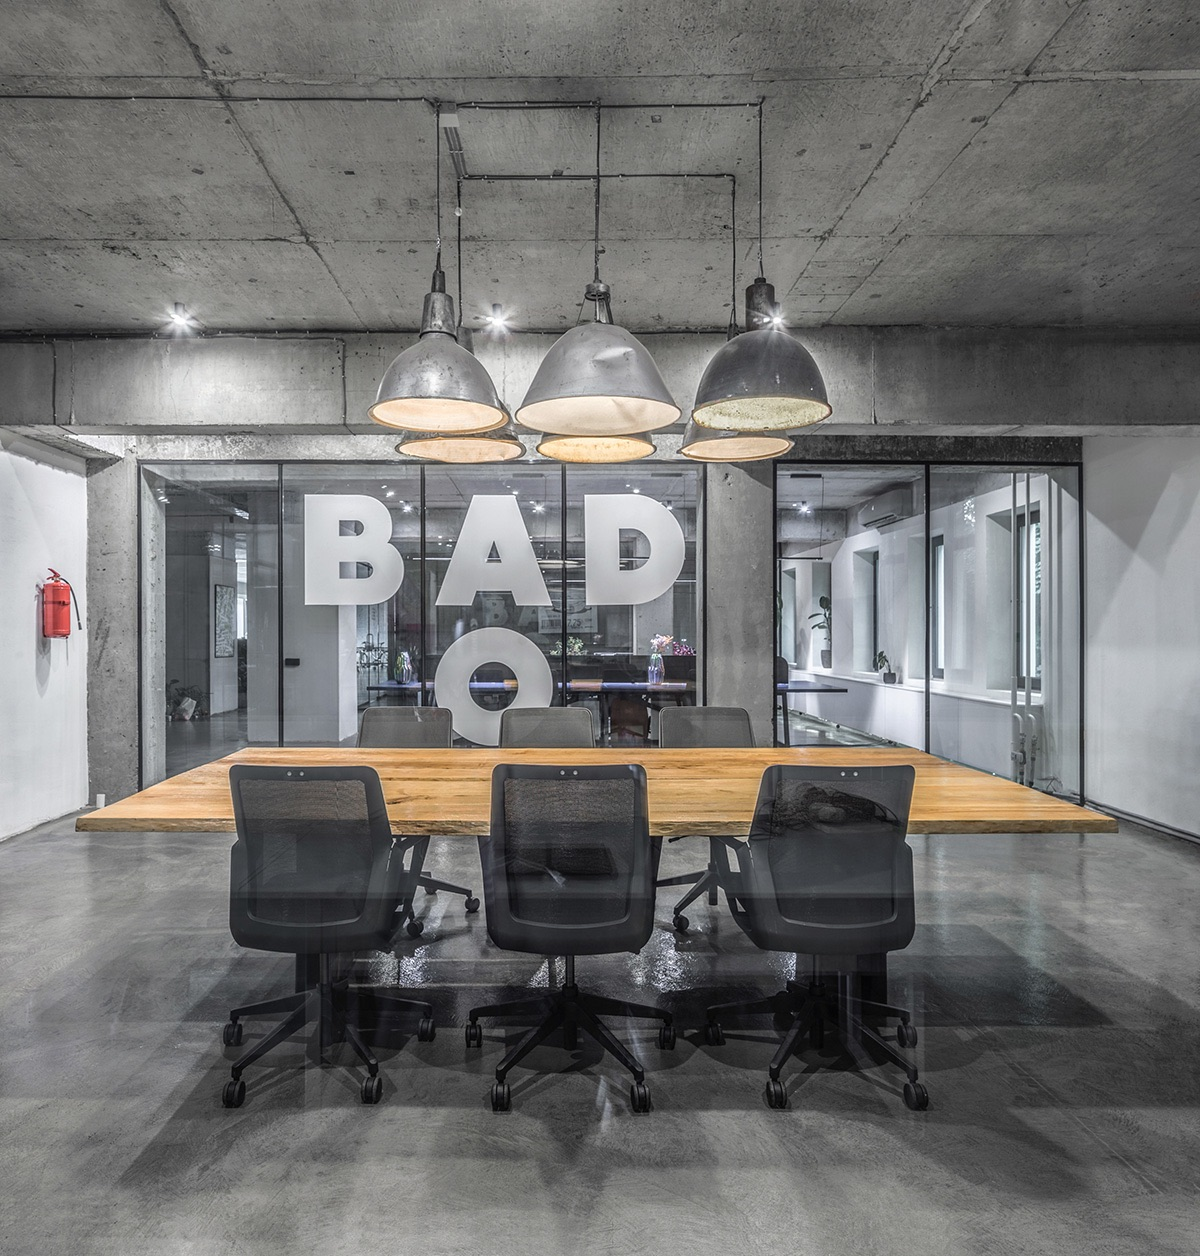 banda-agency-office-4